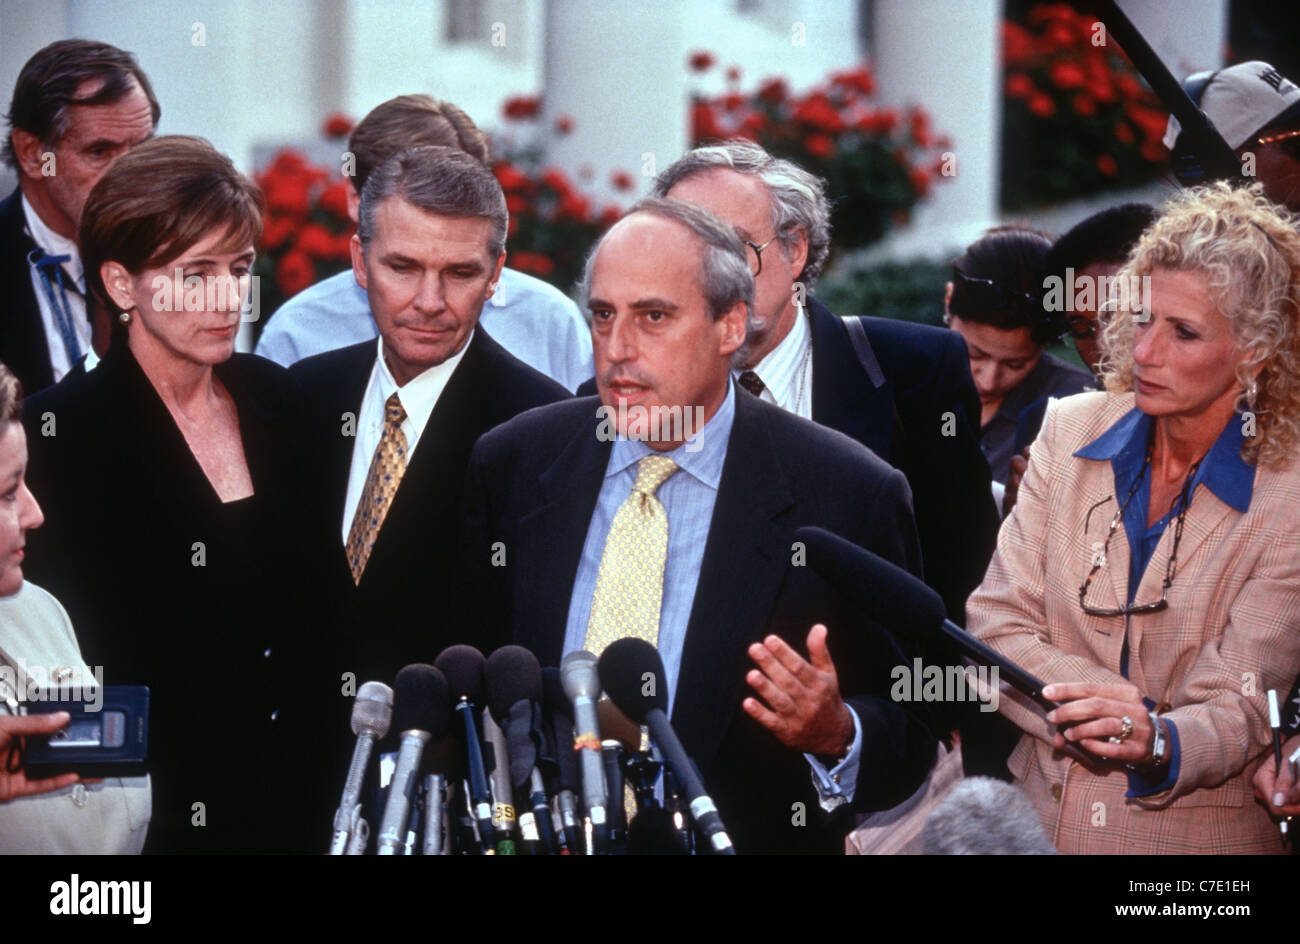 US Secretary Of Agriculture Dan Glickman After President Bill Clinton  Personally Apologized To Cabinet About Lewinsky Scandal